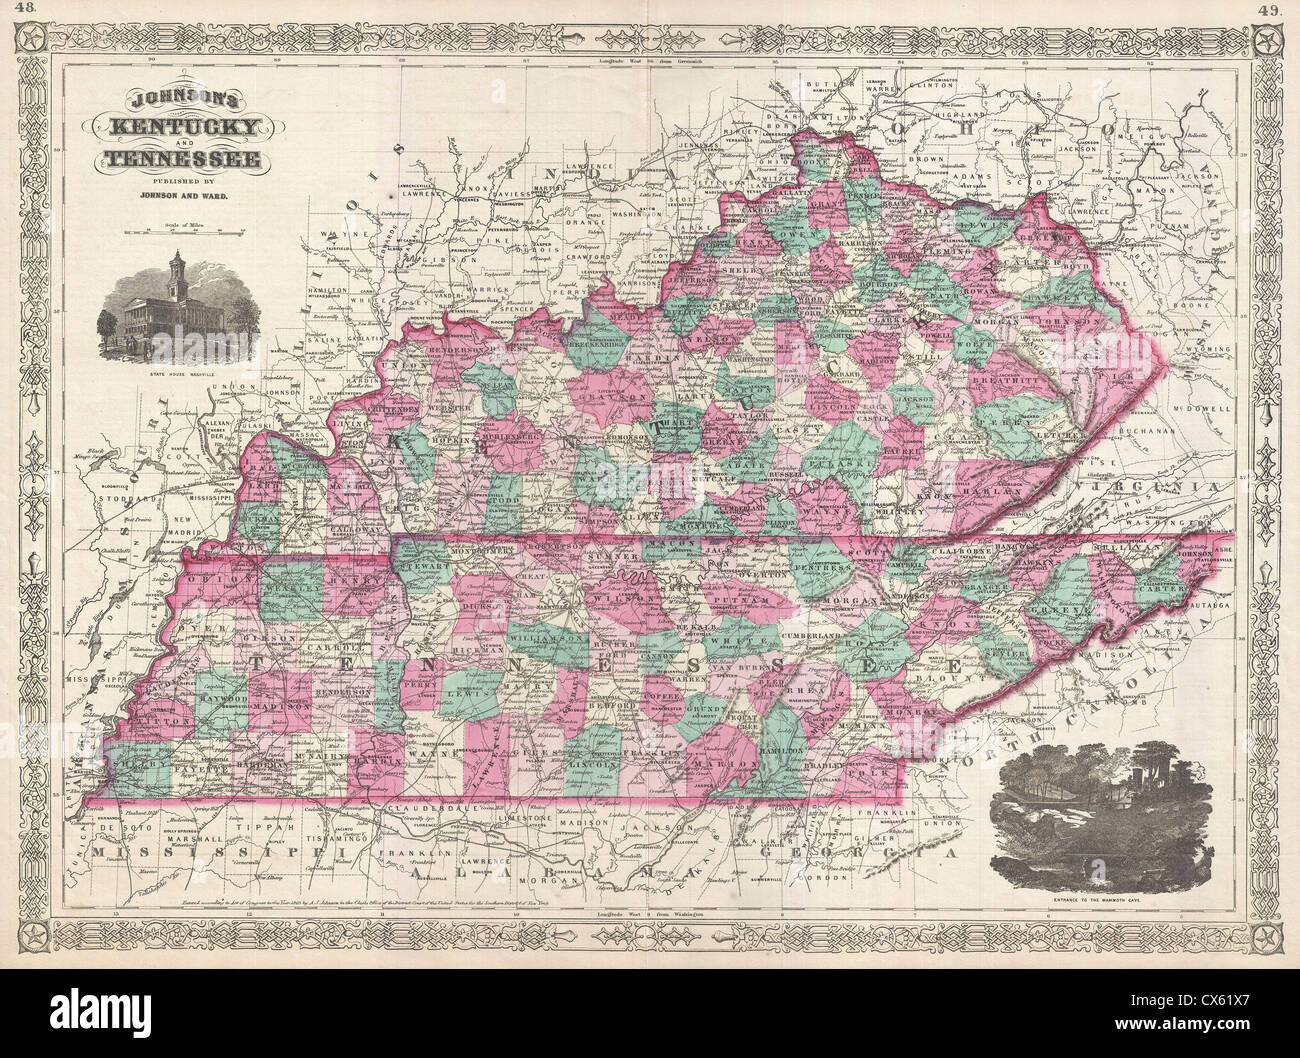 Map Of Kentucky And Tennessee 1866 Johnson Map of Kentucky and Tennessee Stock Photo: 50535023